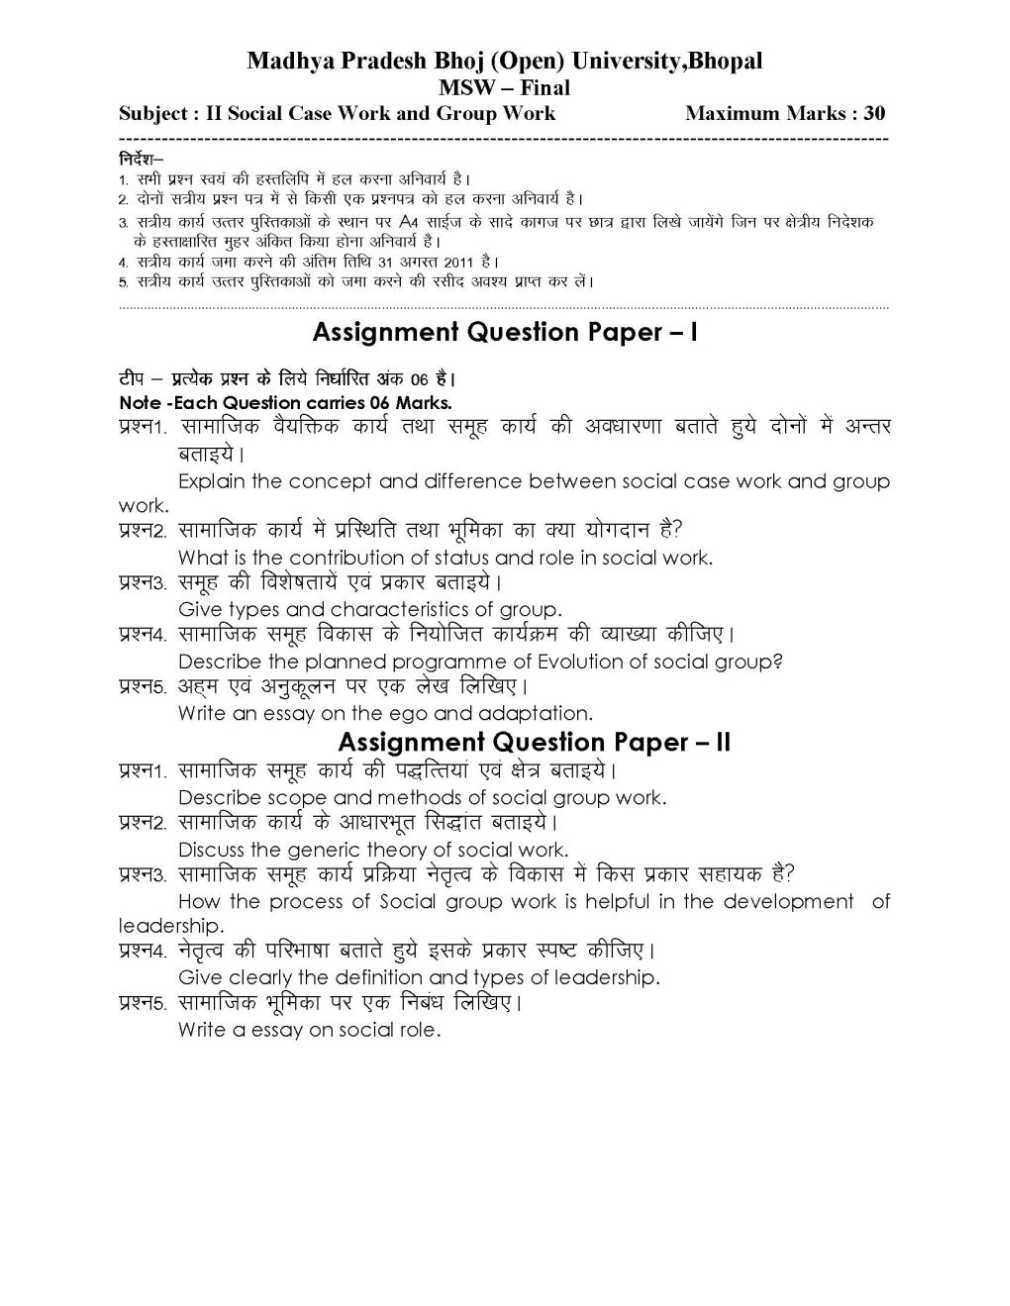 016 Definition Essay Outline Example Bhoj University Bhopal Msw Phenomenal Sample Extended Full